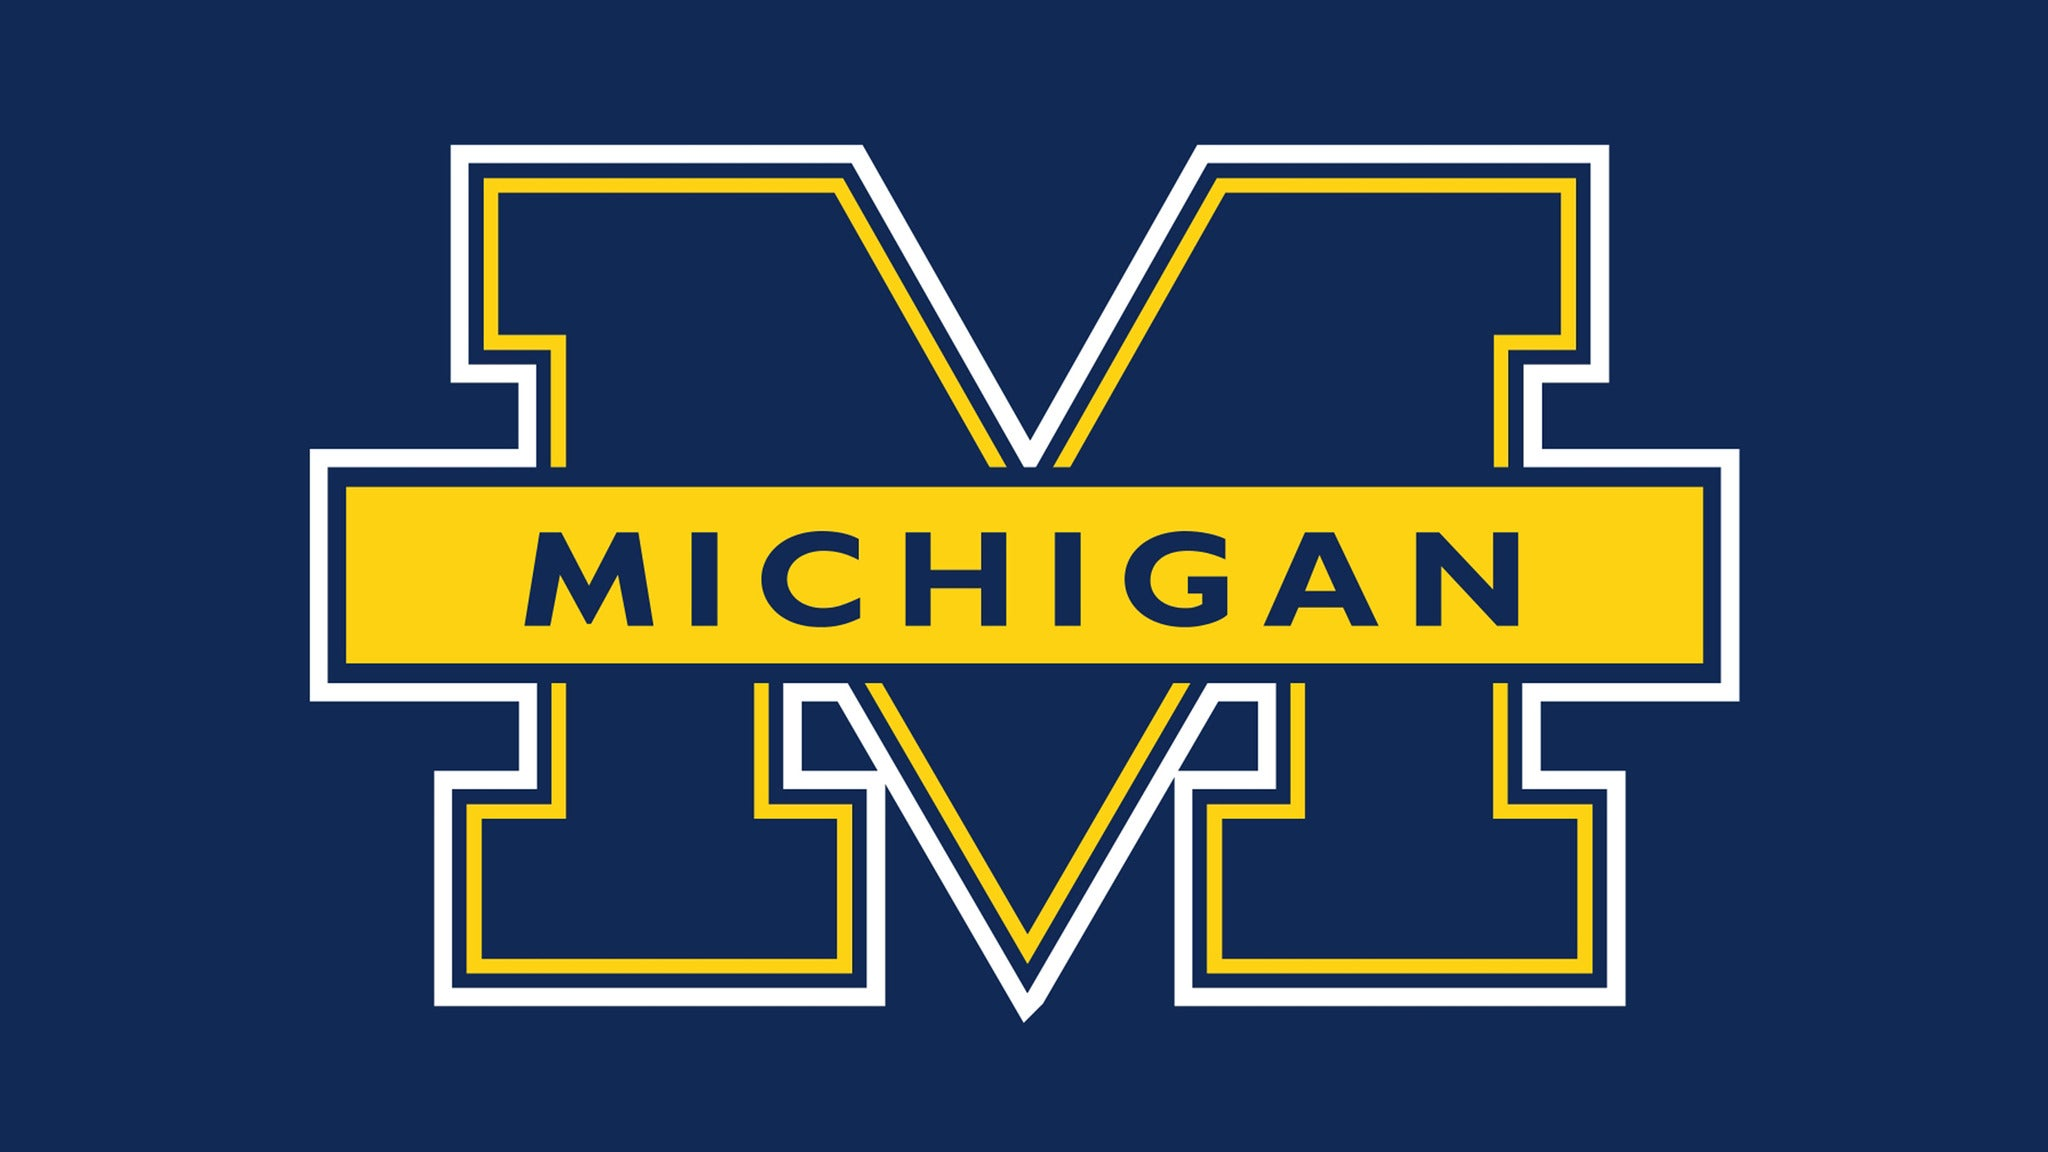 Ohio State Buckeyes Football at Michigan Wolverines Football